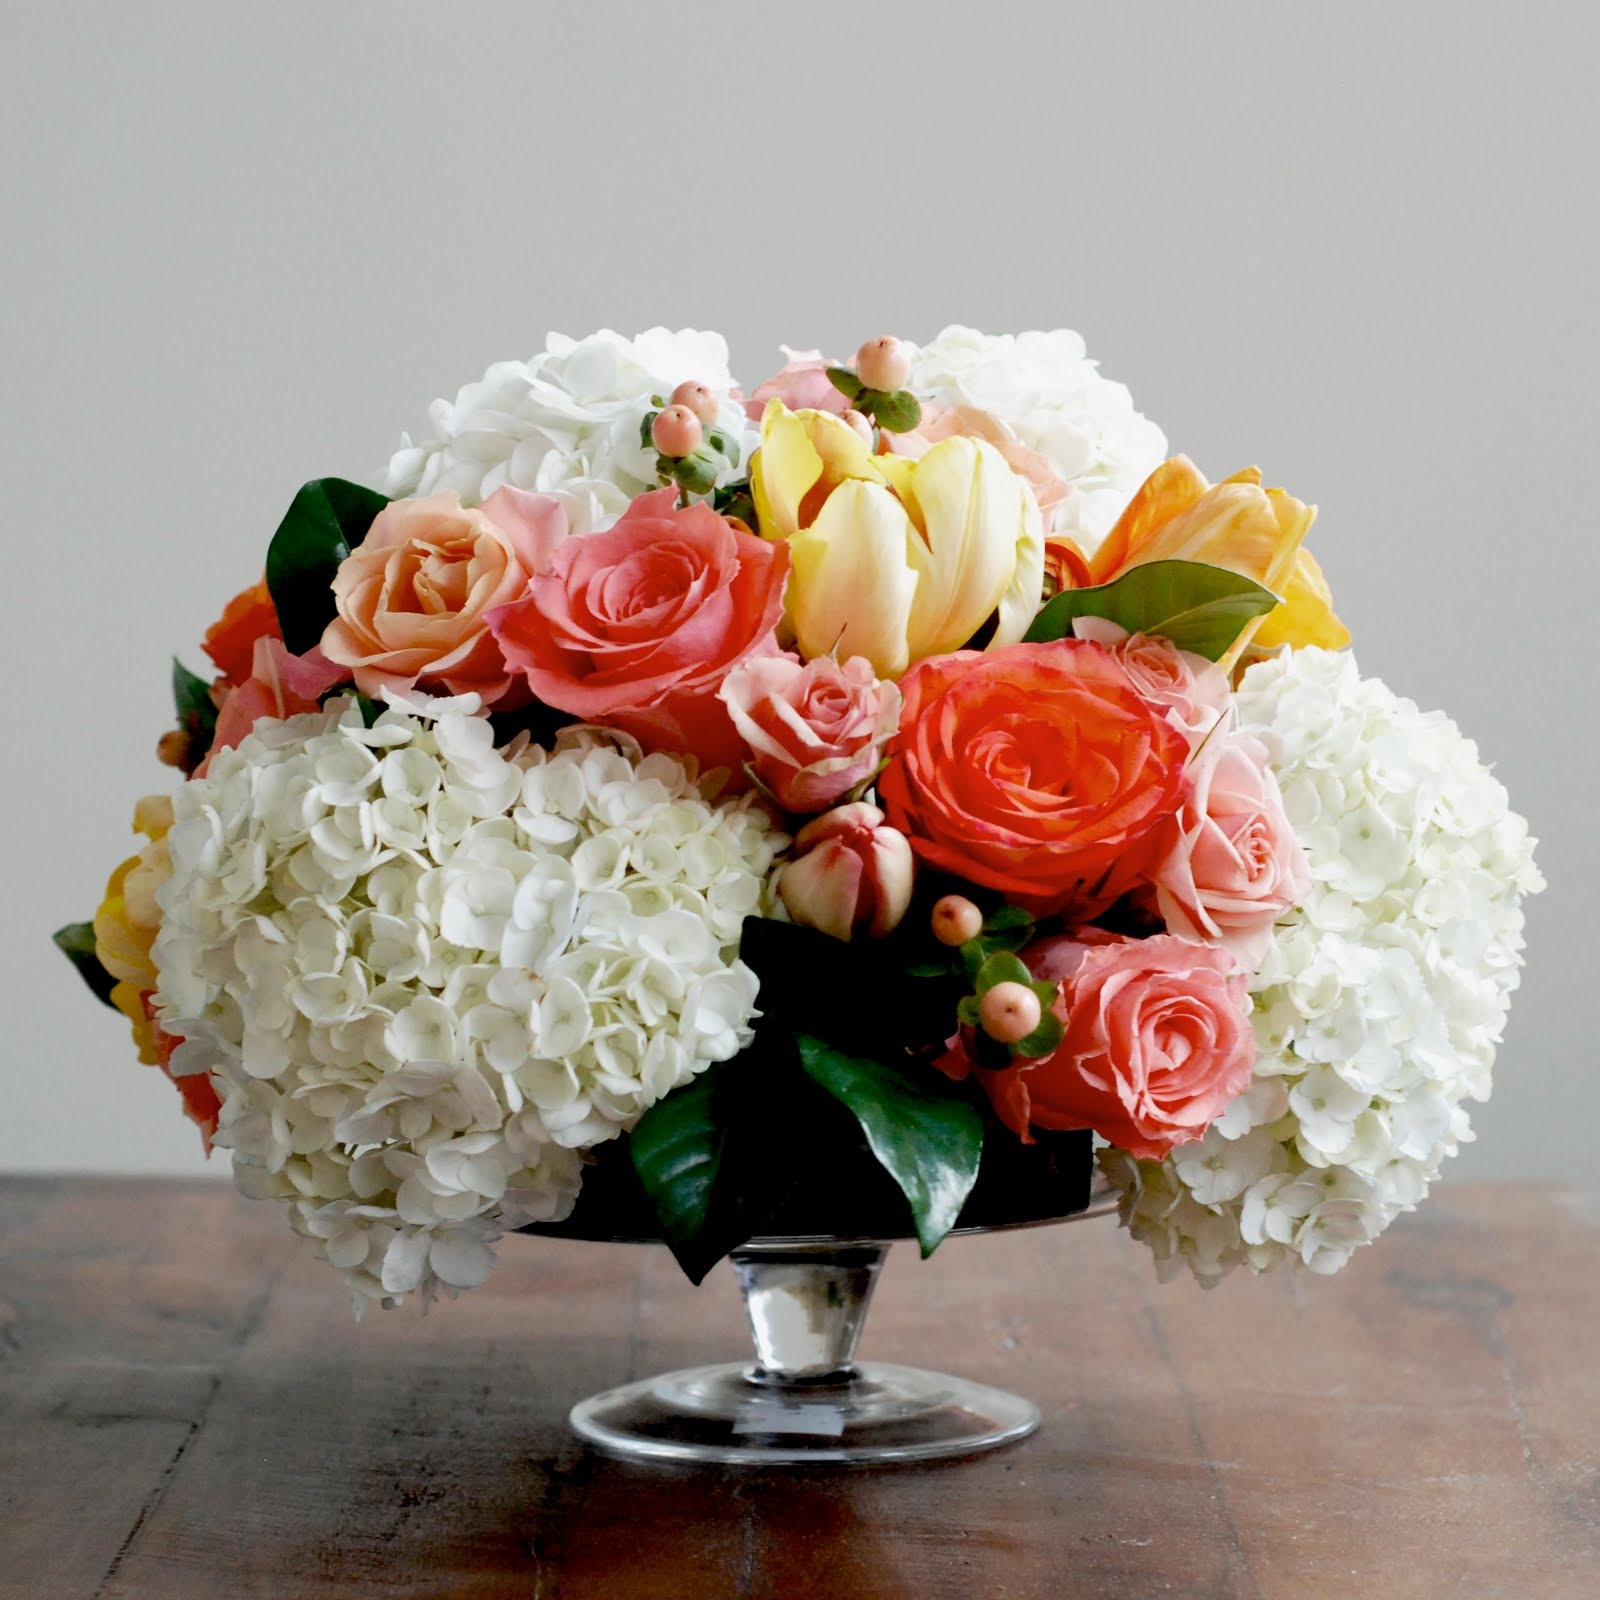 Floral design 101 the sweetest occasion - Flowers for table decorations ...